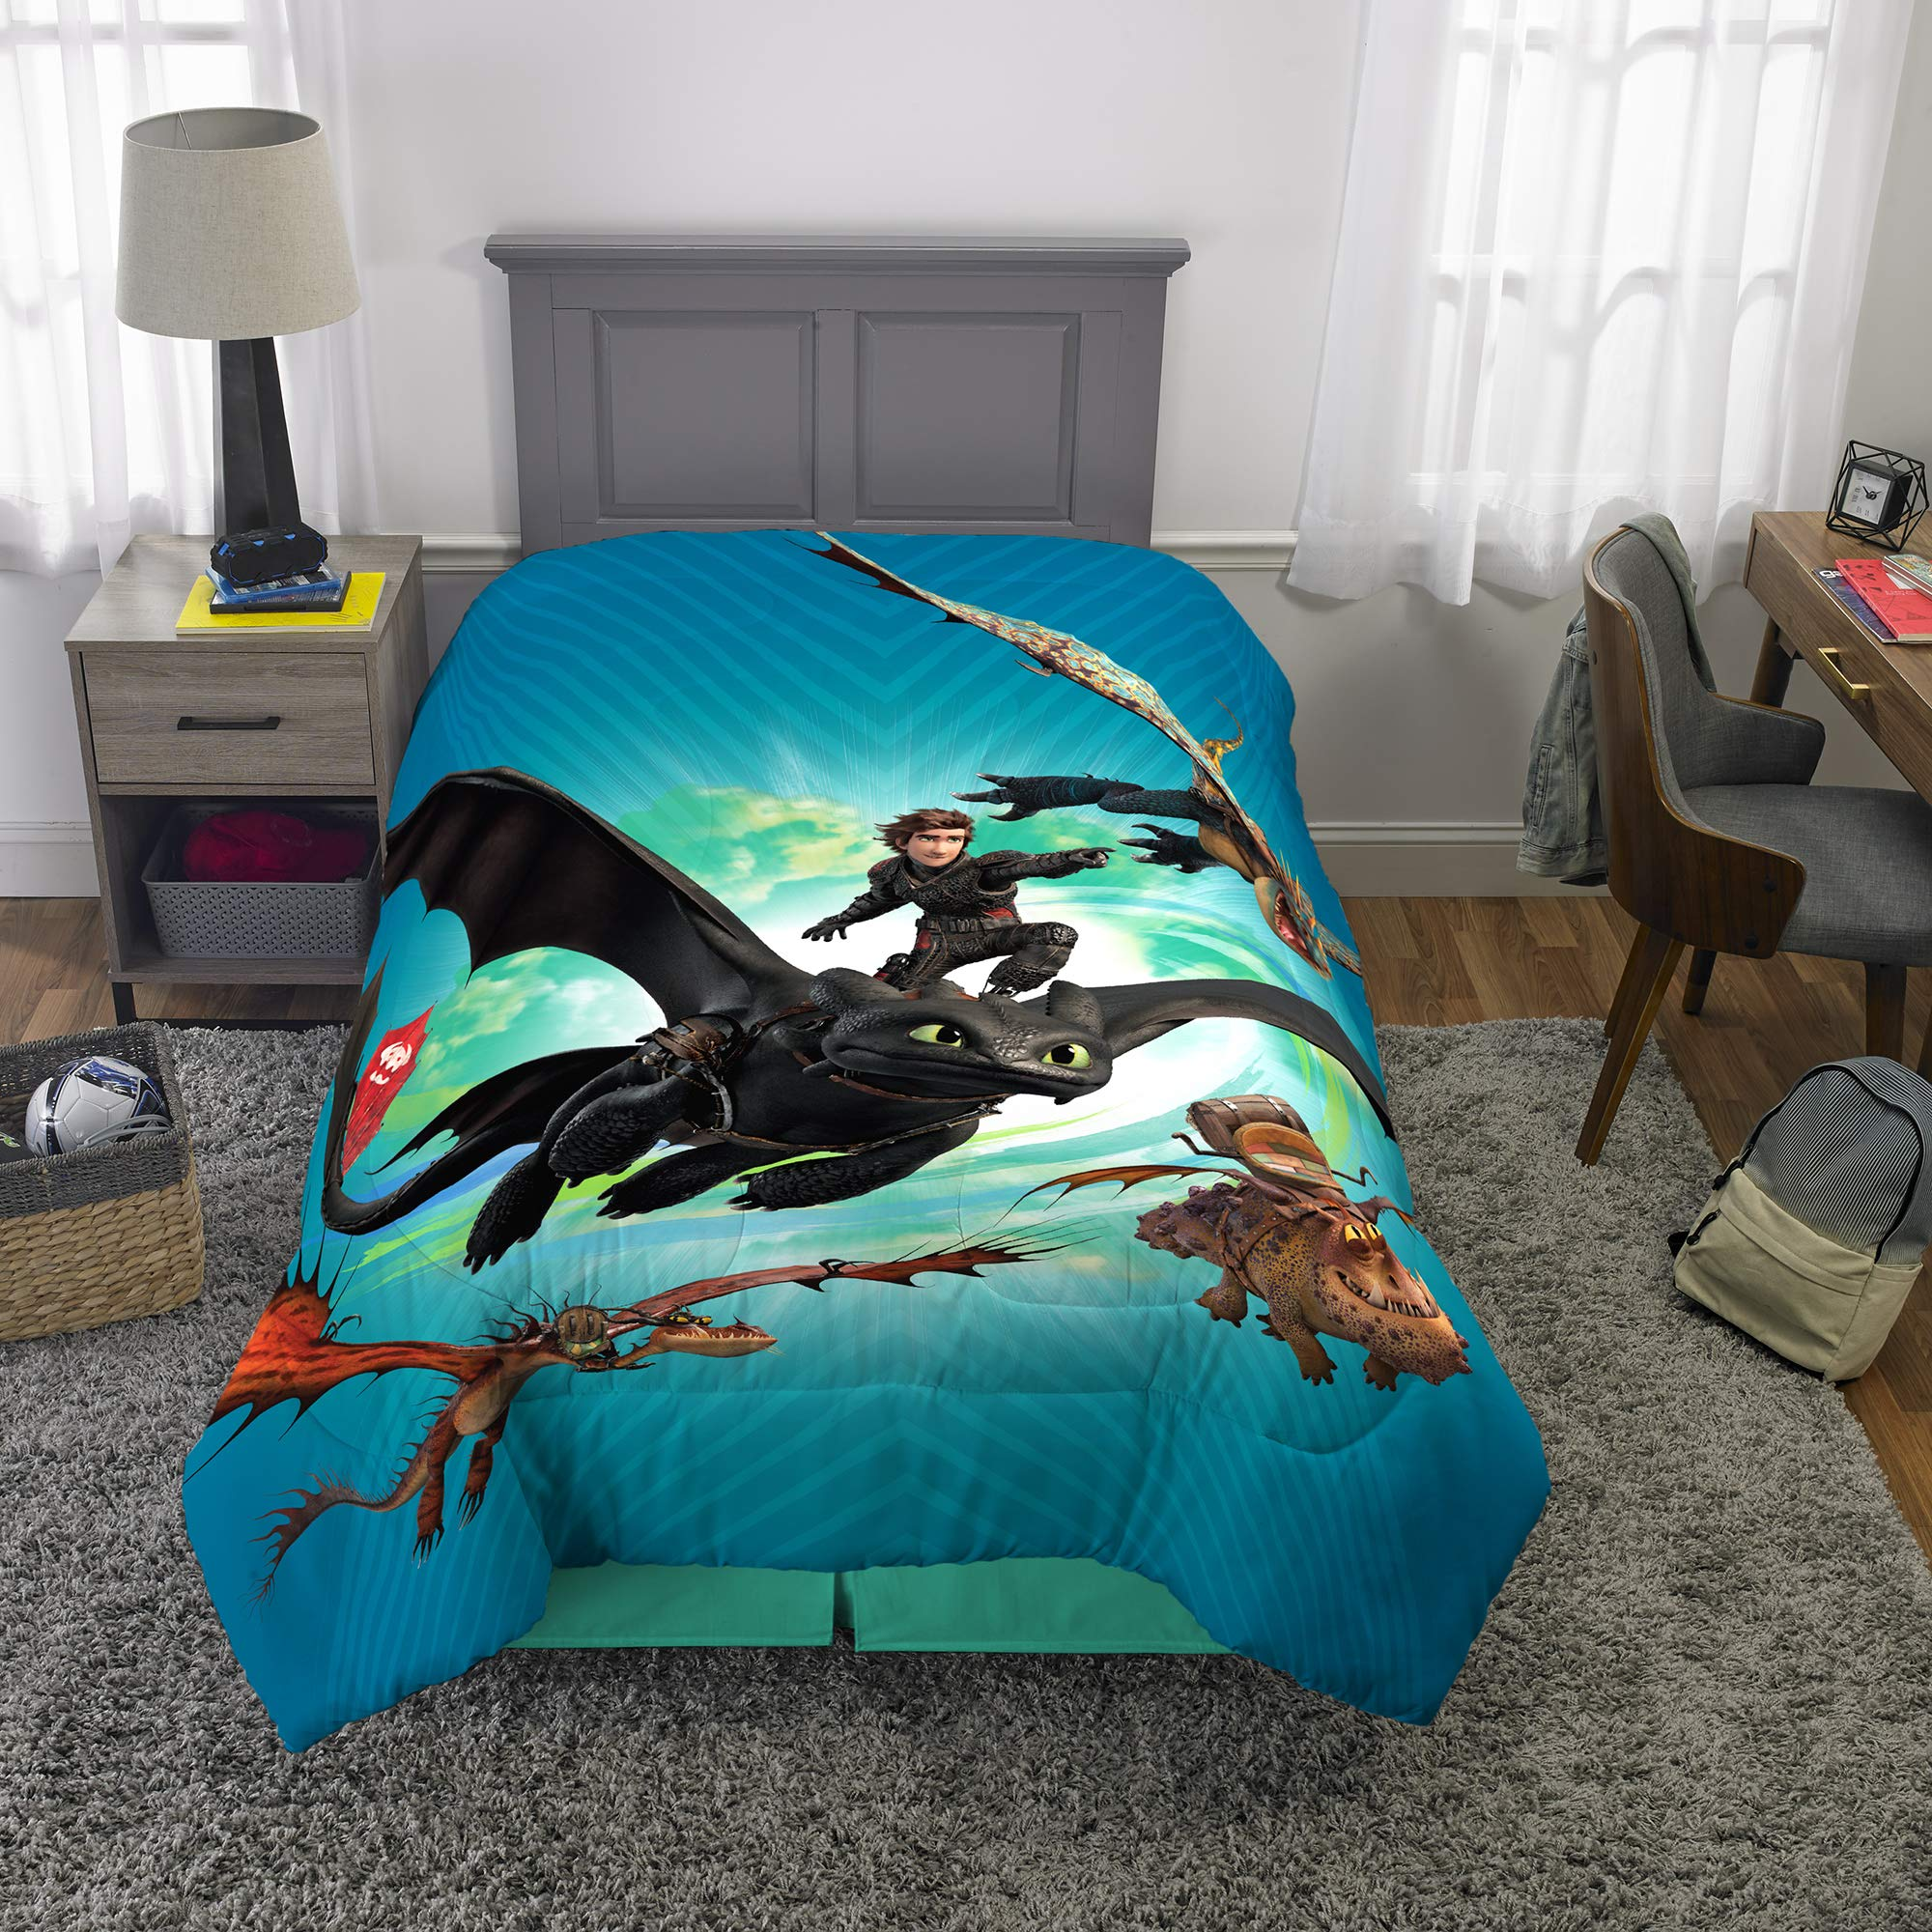 Franco Kids Bedding Super Soft Microfiber Comforter, Twin Size 64'' x 86'', How to How to Train Your Dragon